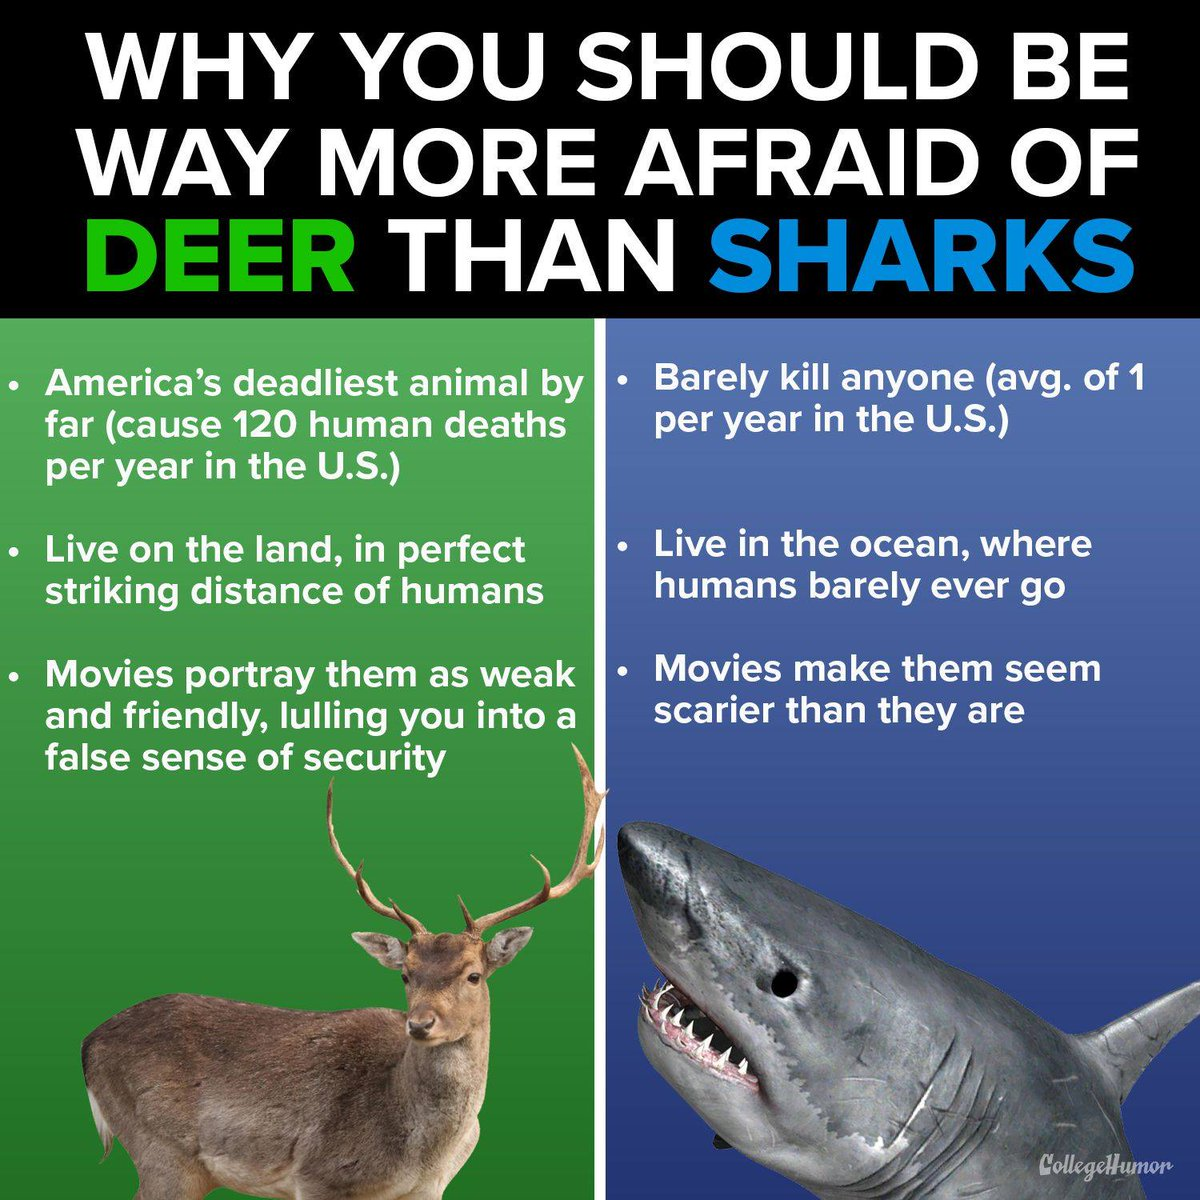 DEER FEAR!  10 persons die by deer in 2017 (Germany). Caused by sharks: same number, but worldwide!  Man kills about 100 million sharks each year. No known statistics for deer. Don't fear sharks!  Meme by http://bit.ly/2JBjZSt  #SharkProtection pic.twitter.com/M22CrYoeOM